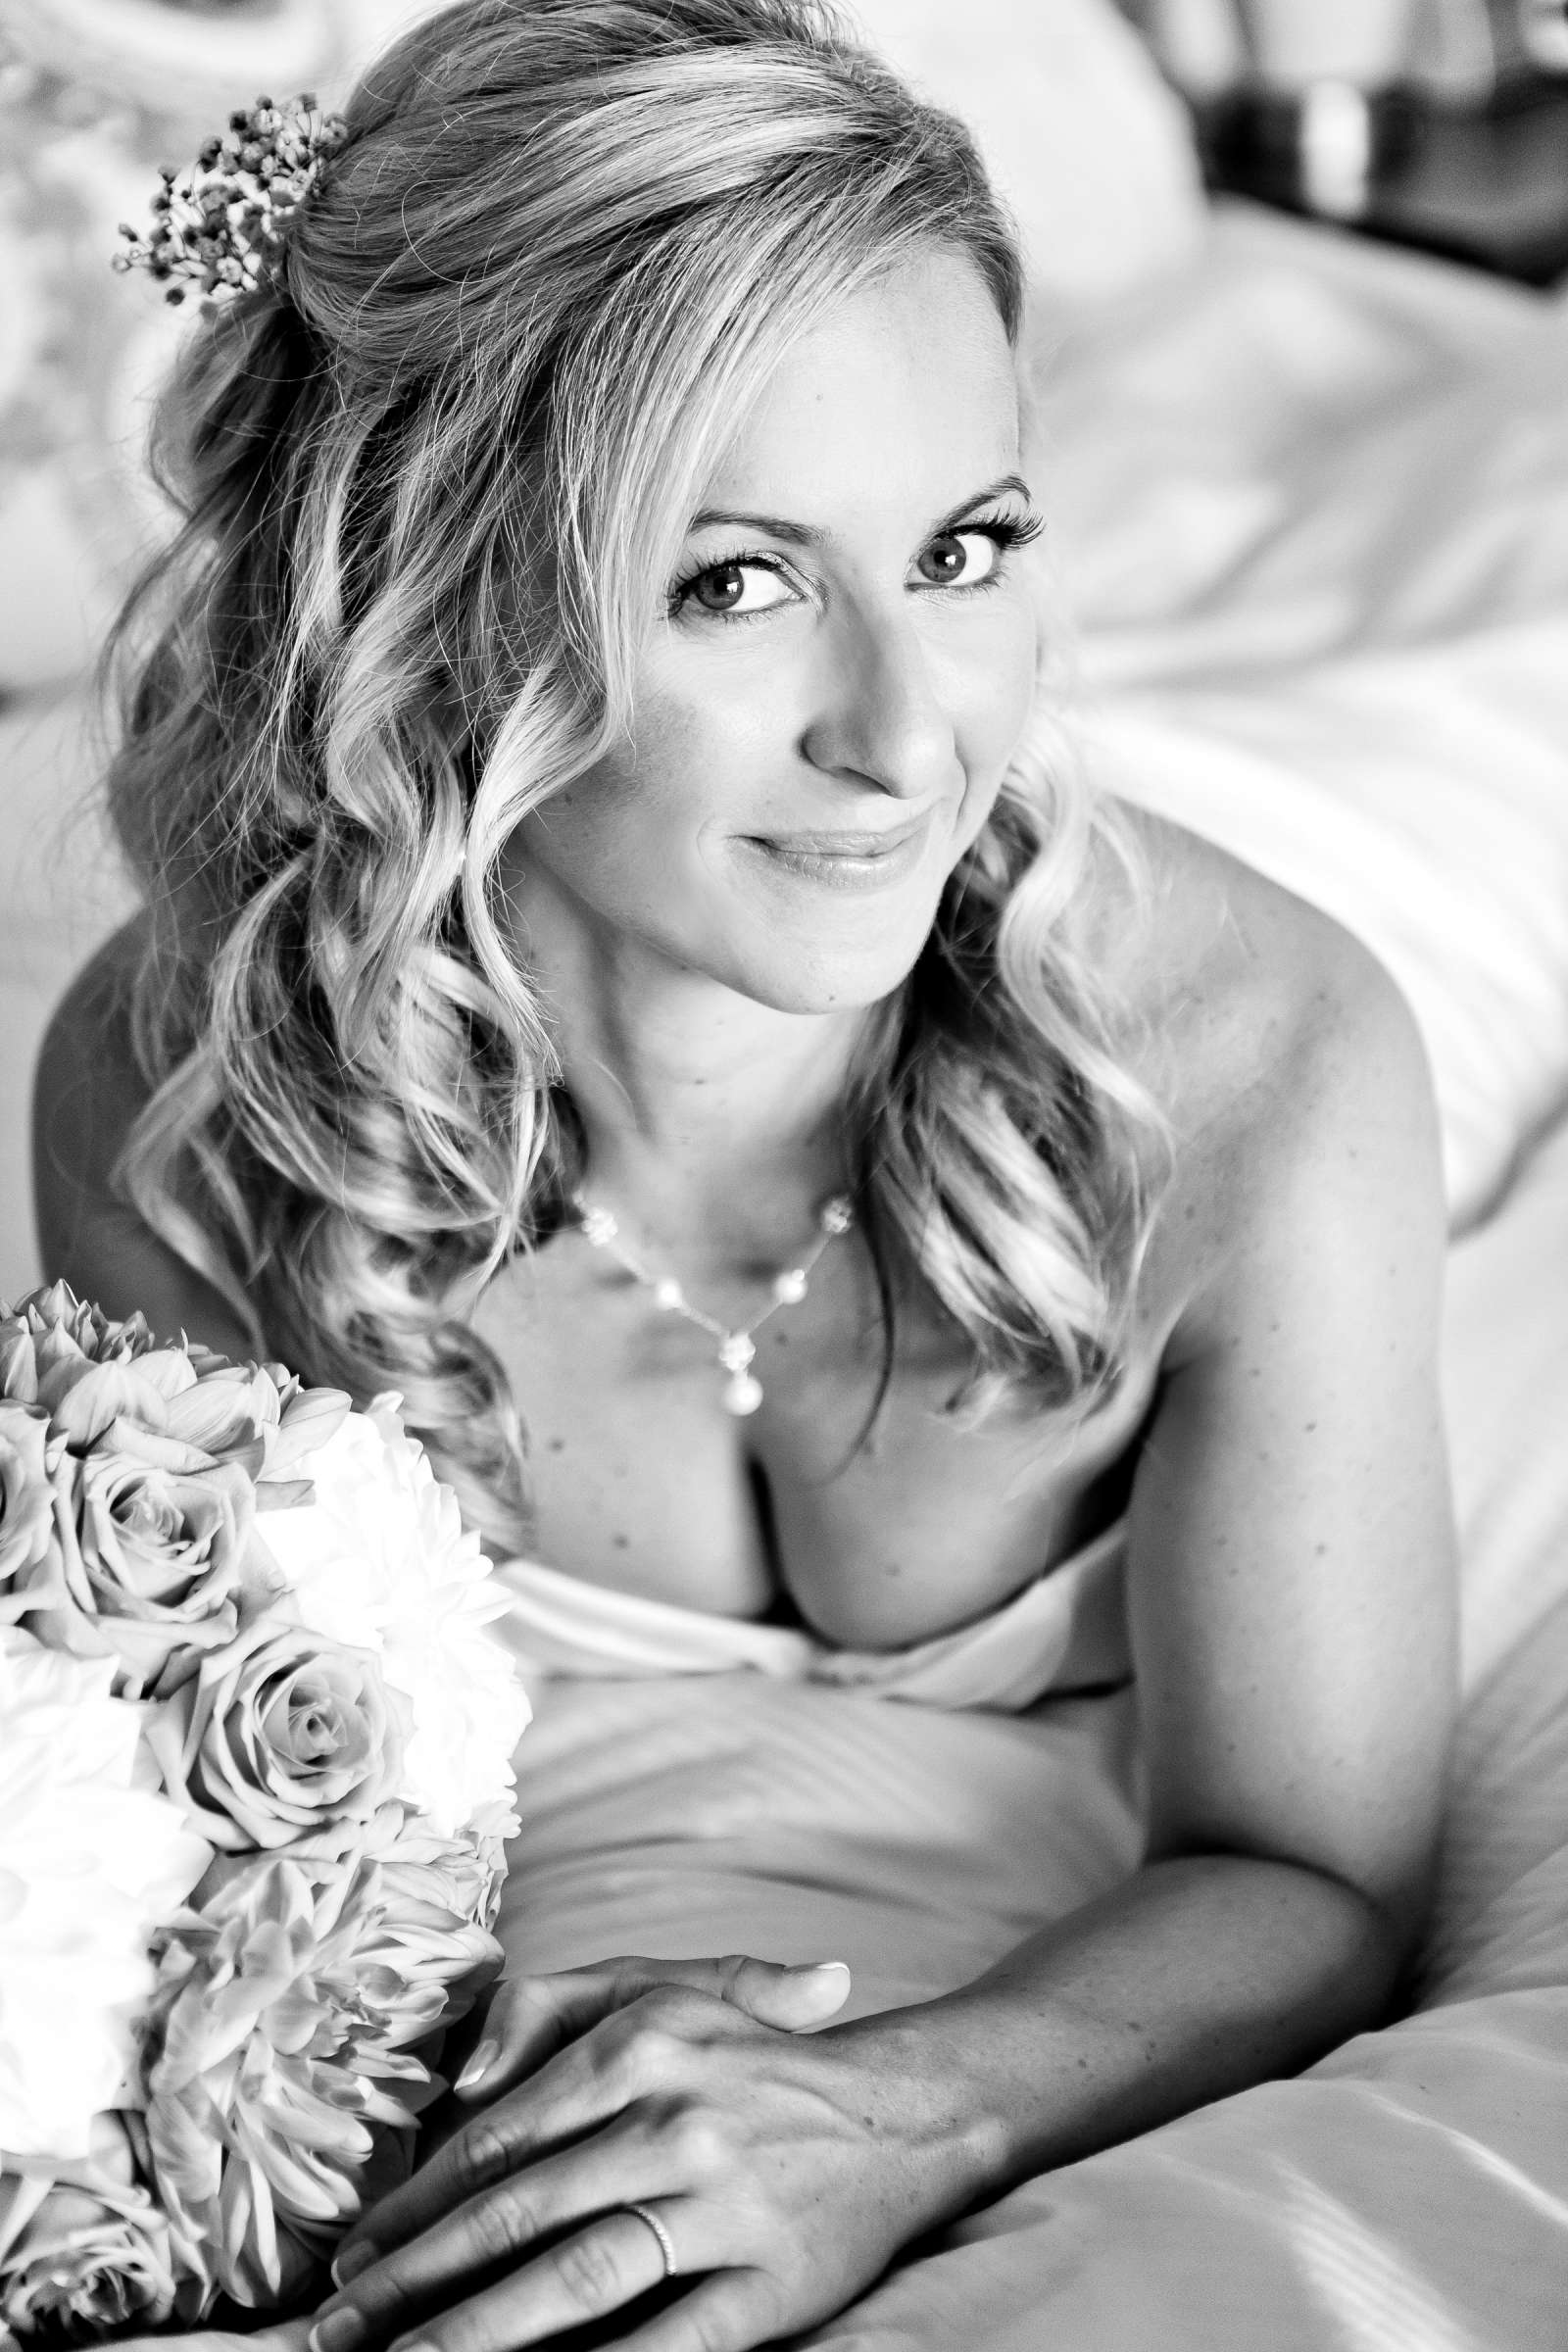 La Jolla Shores Hotel Wedding coordinated by I Do Weddings, Stefanie and Craig Wedding Photo #373301 by True Photography